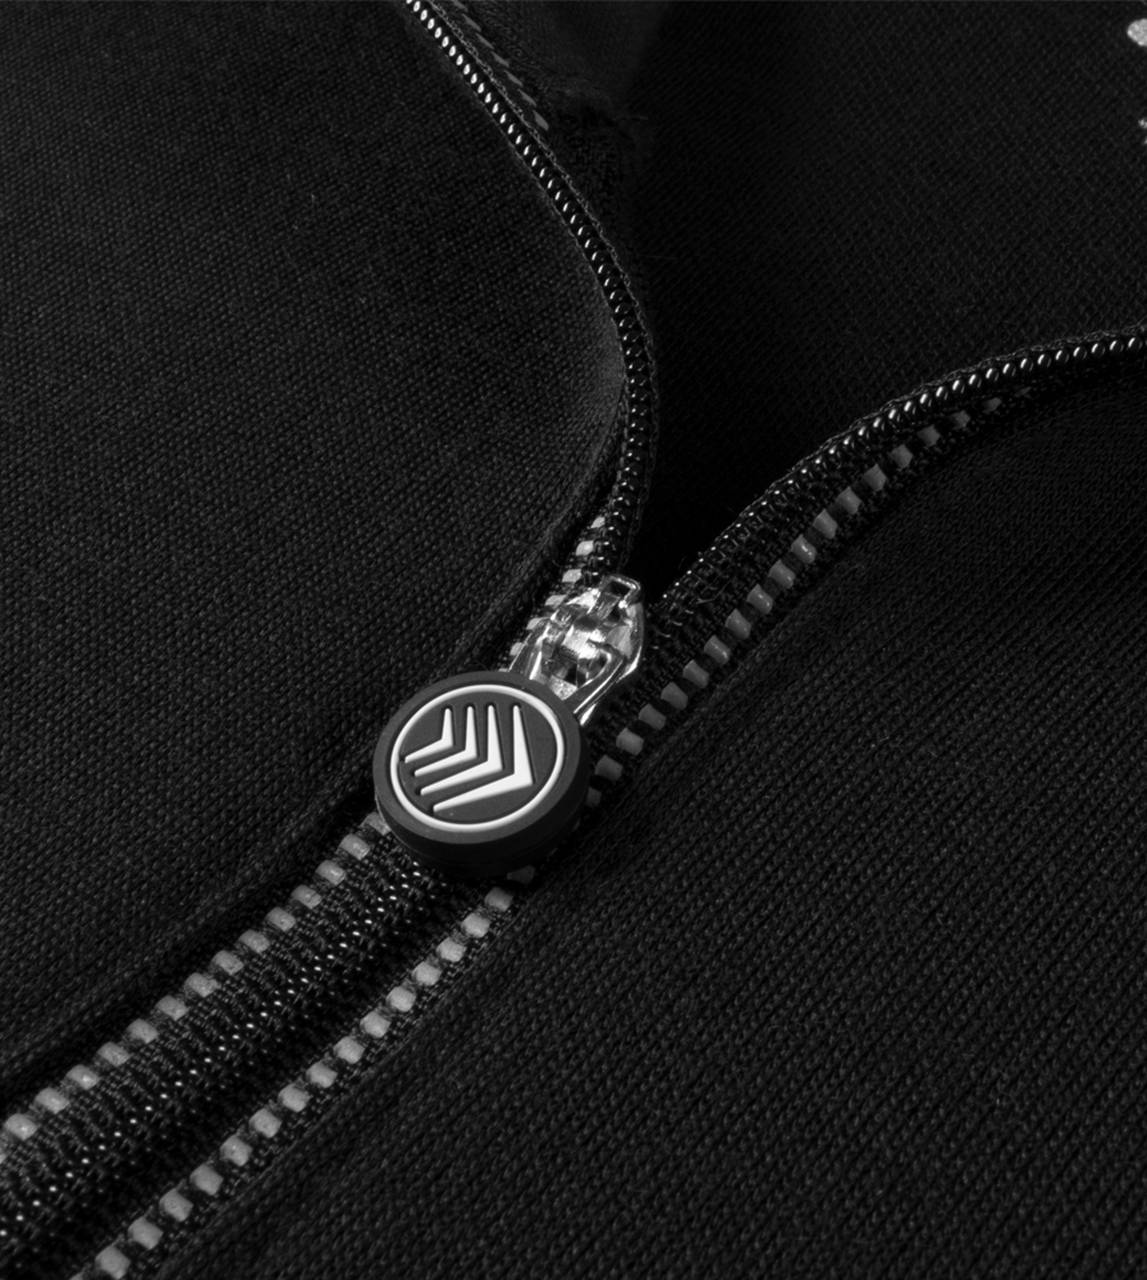 merino wool pullover zipper detail